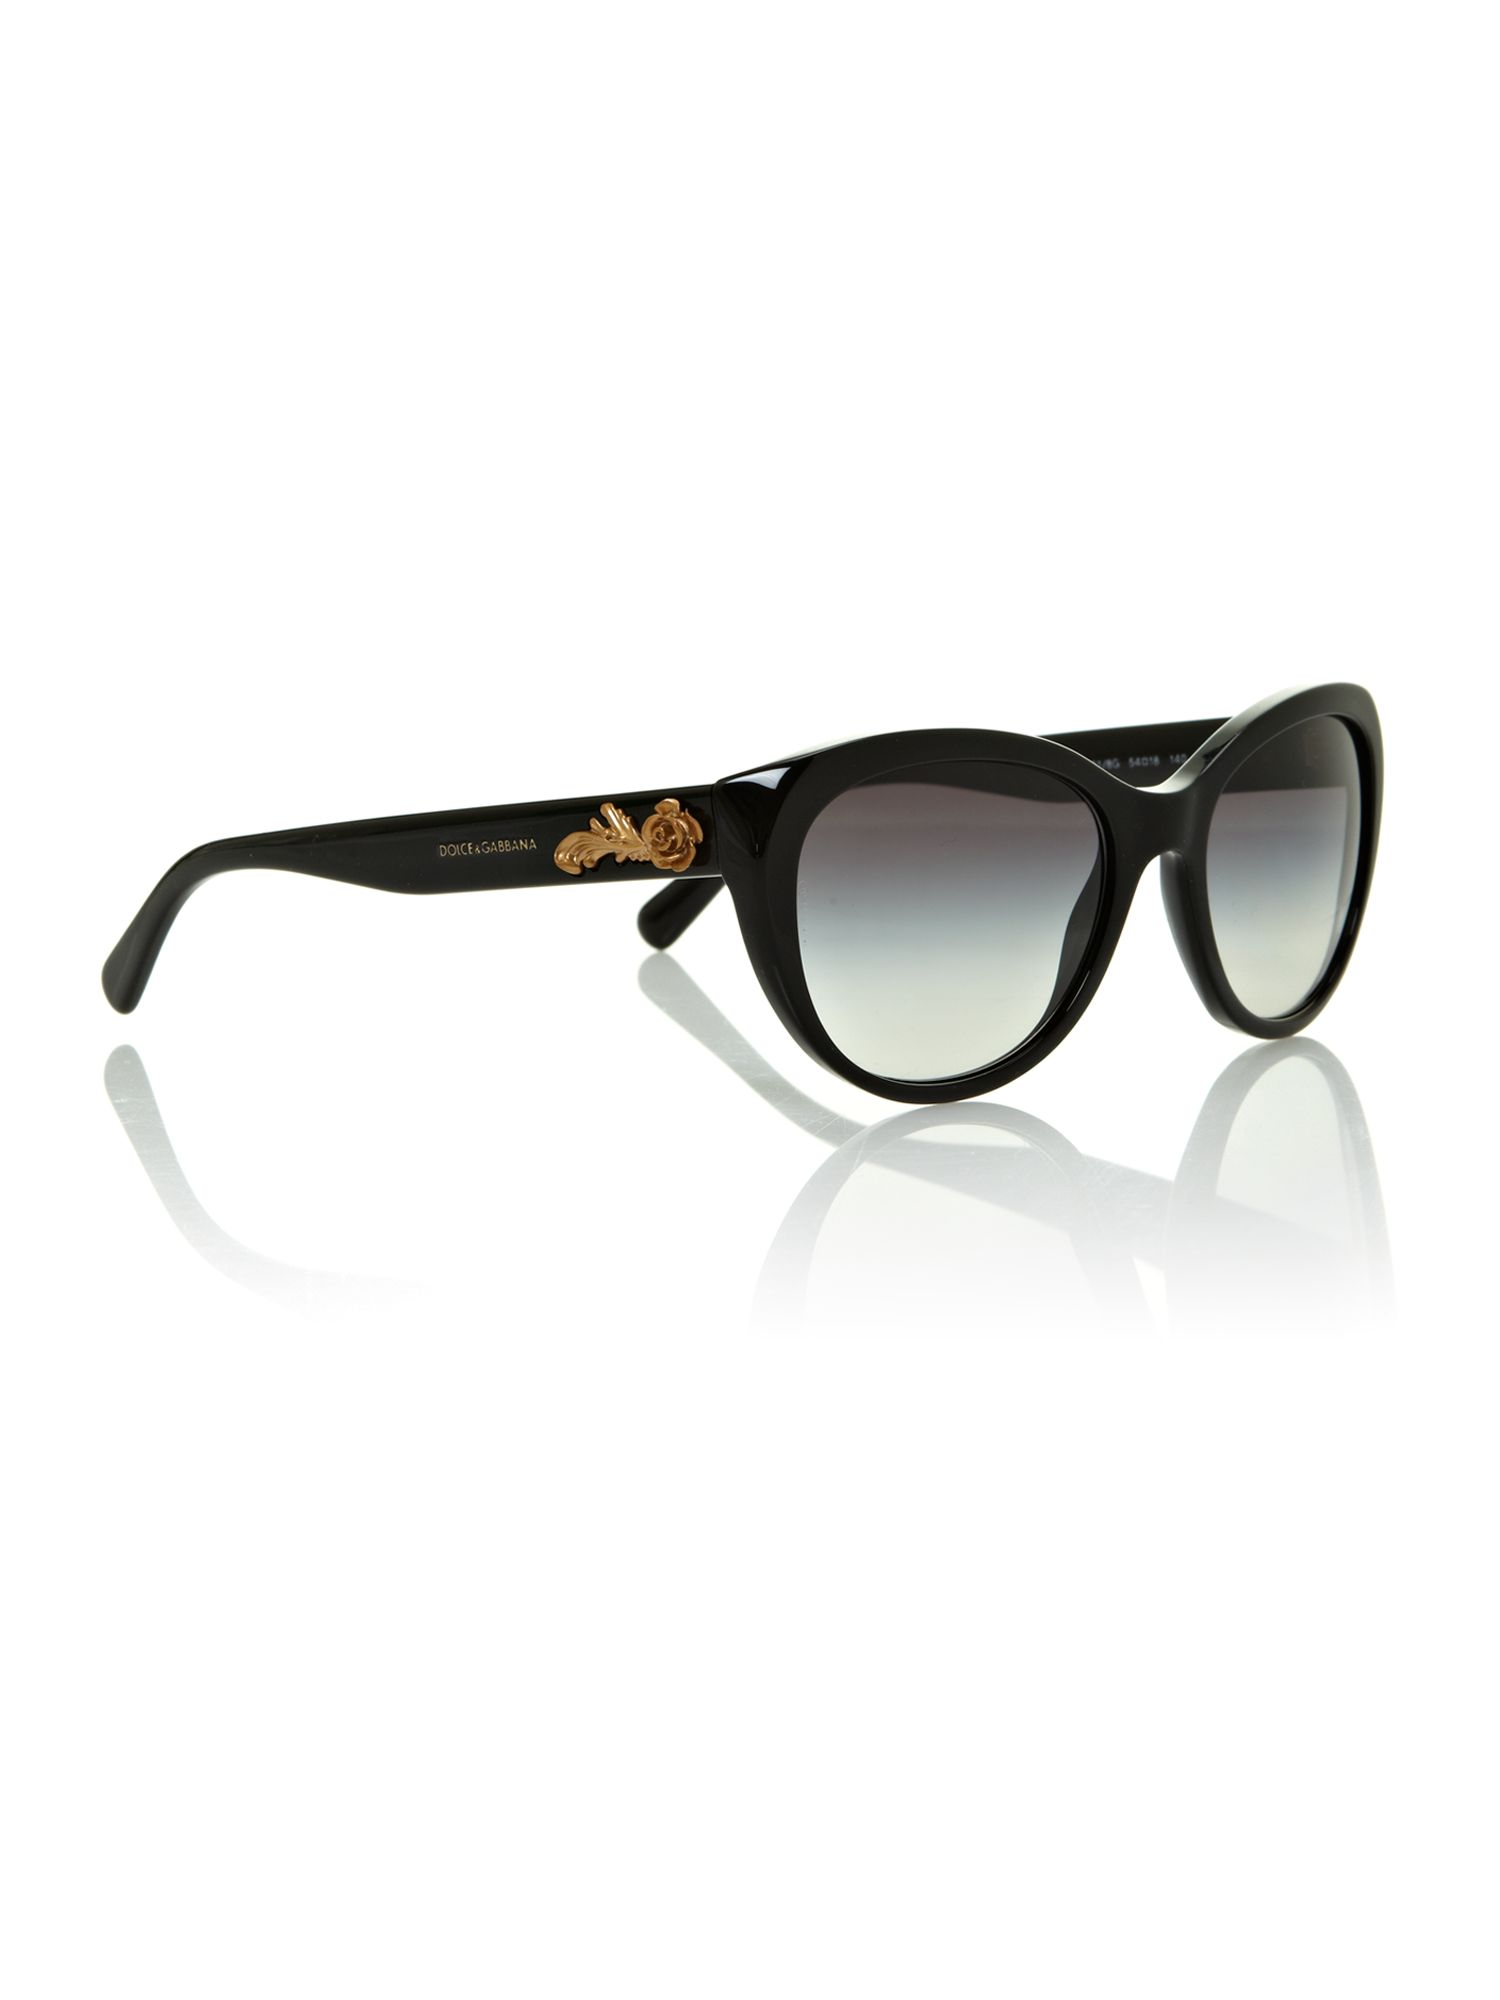 Ladies DG4160 sicilian baroque sunglasses